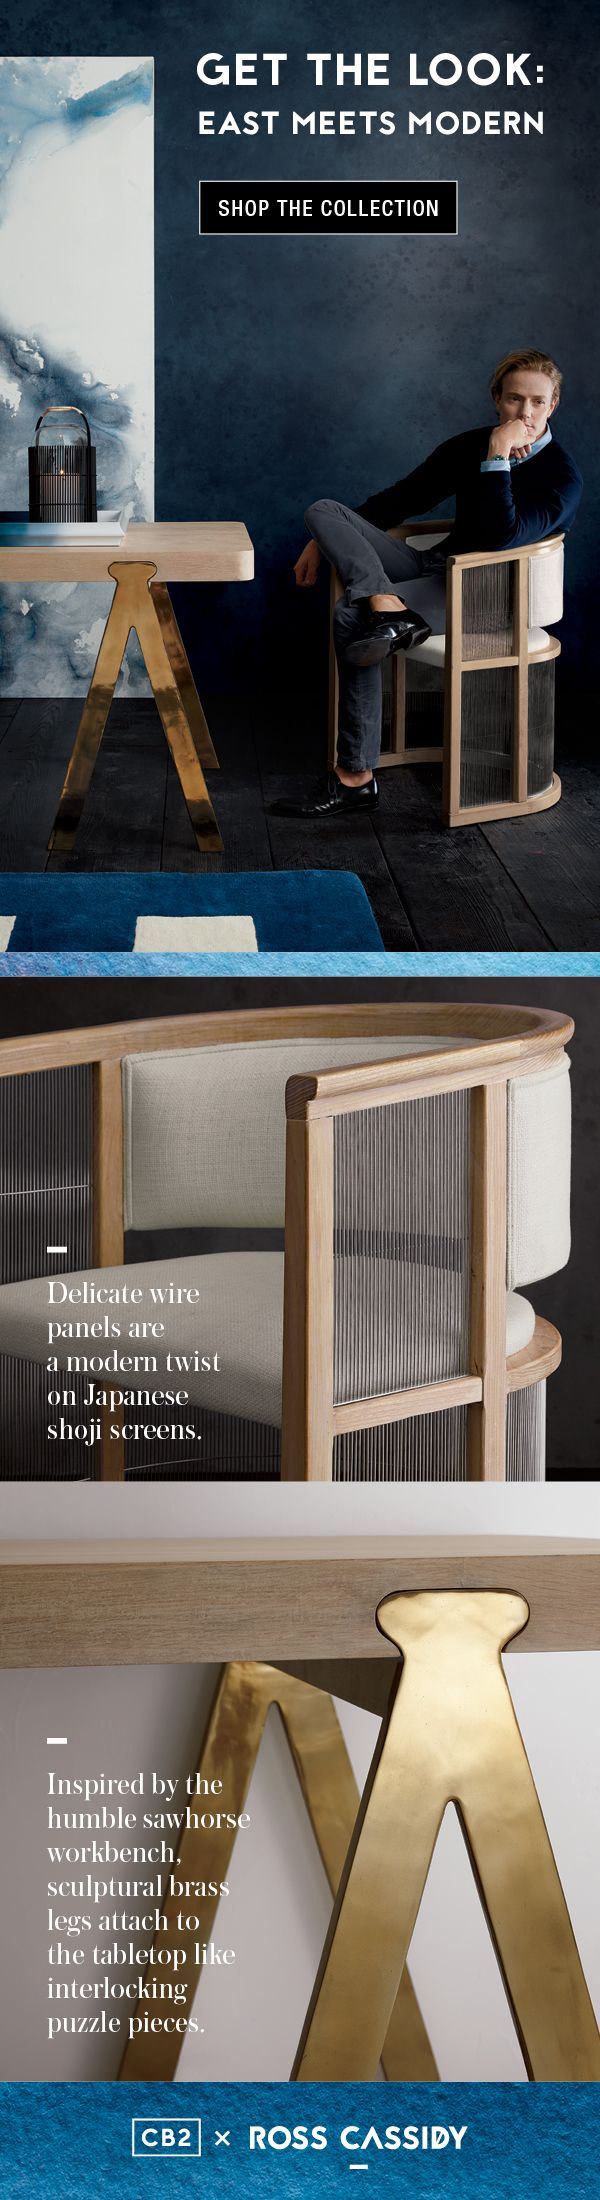 17 best images about furnishings on pinterest peacock for Minimalist architecture theory